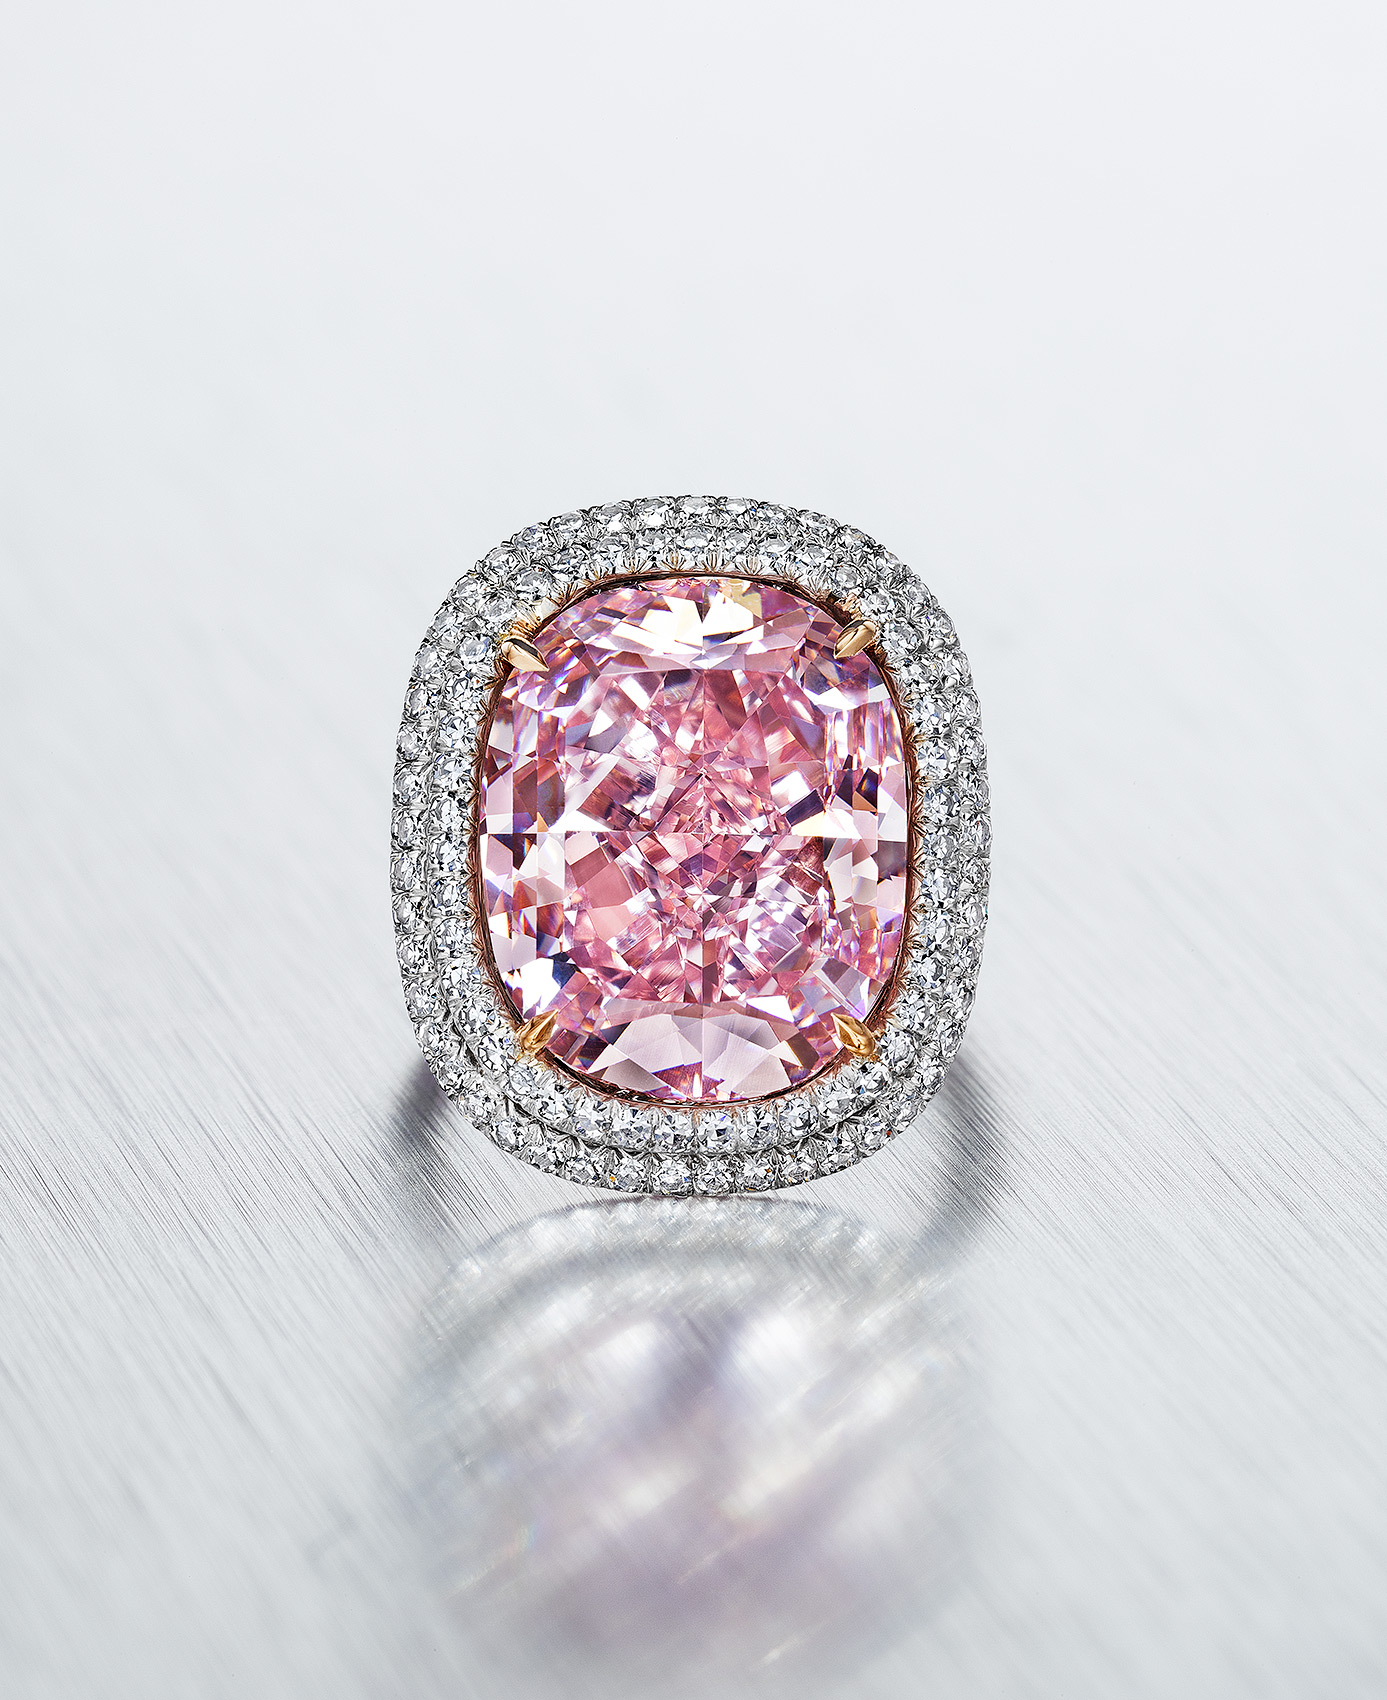 16-Carat-Pink-Diamond-Ring